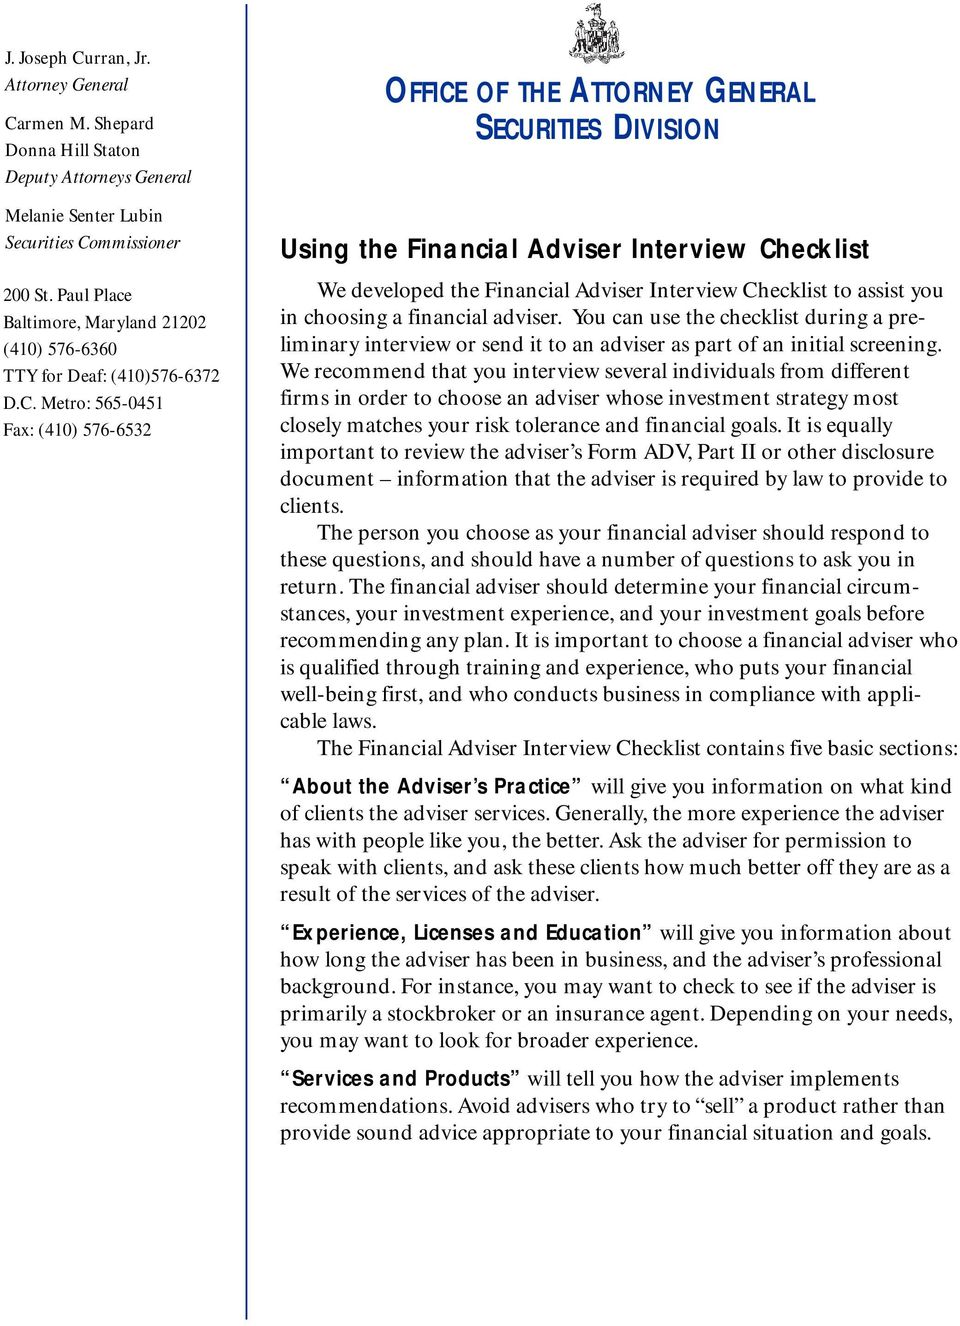 Metro: 565-0451 Fax: (410) 576-6532 OFFICE OF THE ATTORNEY GENERAL SECURITIES DIVISION Using the Financial Adviser Interview Checklist We developed the Financial Adviser Interview Checklist to assist